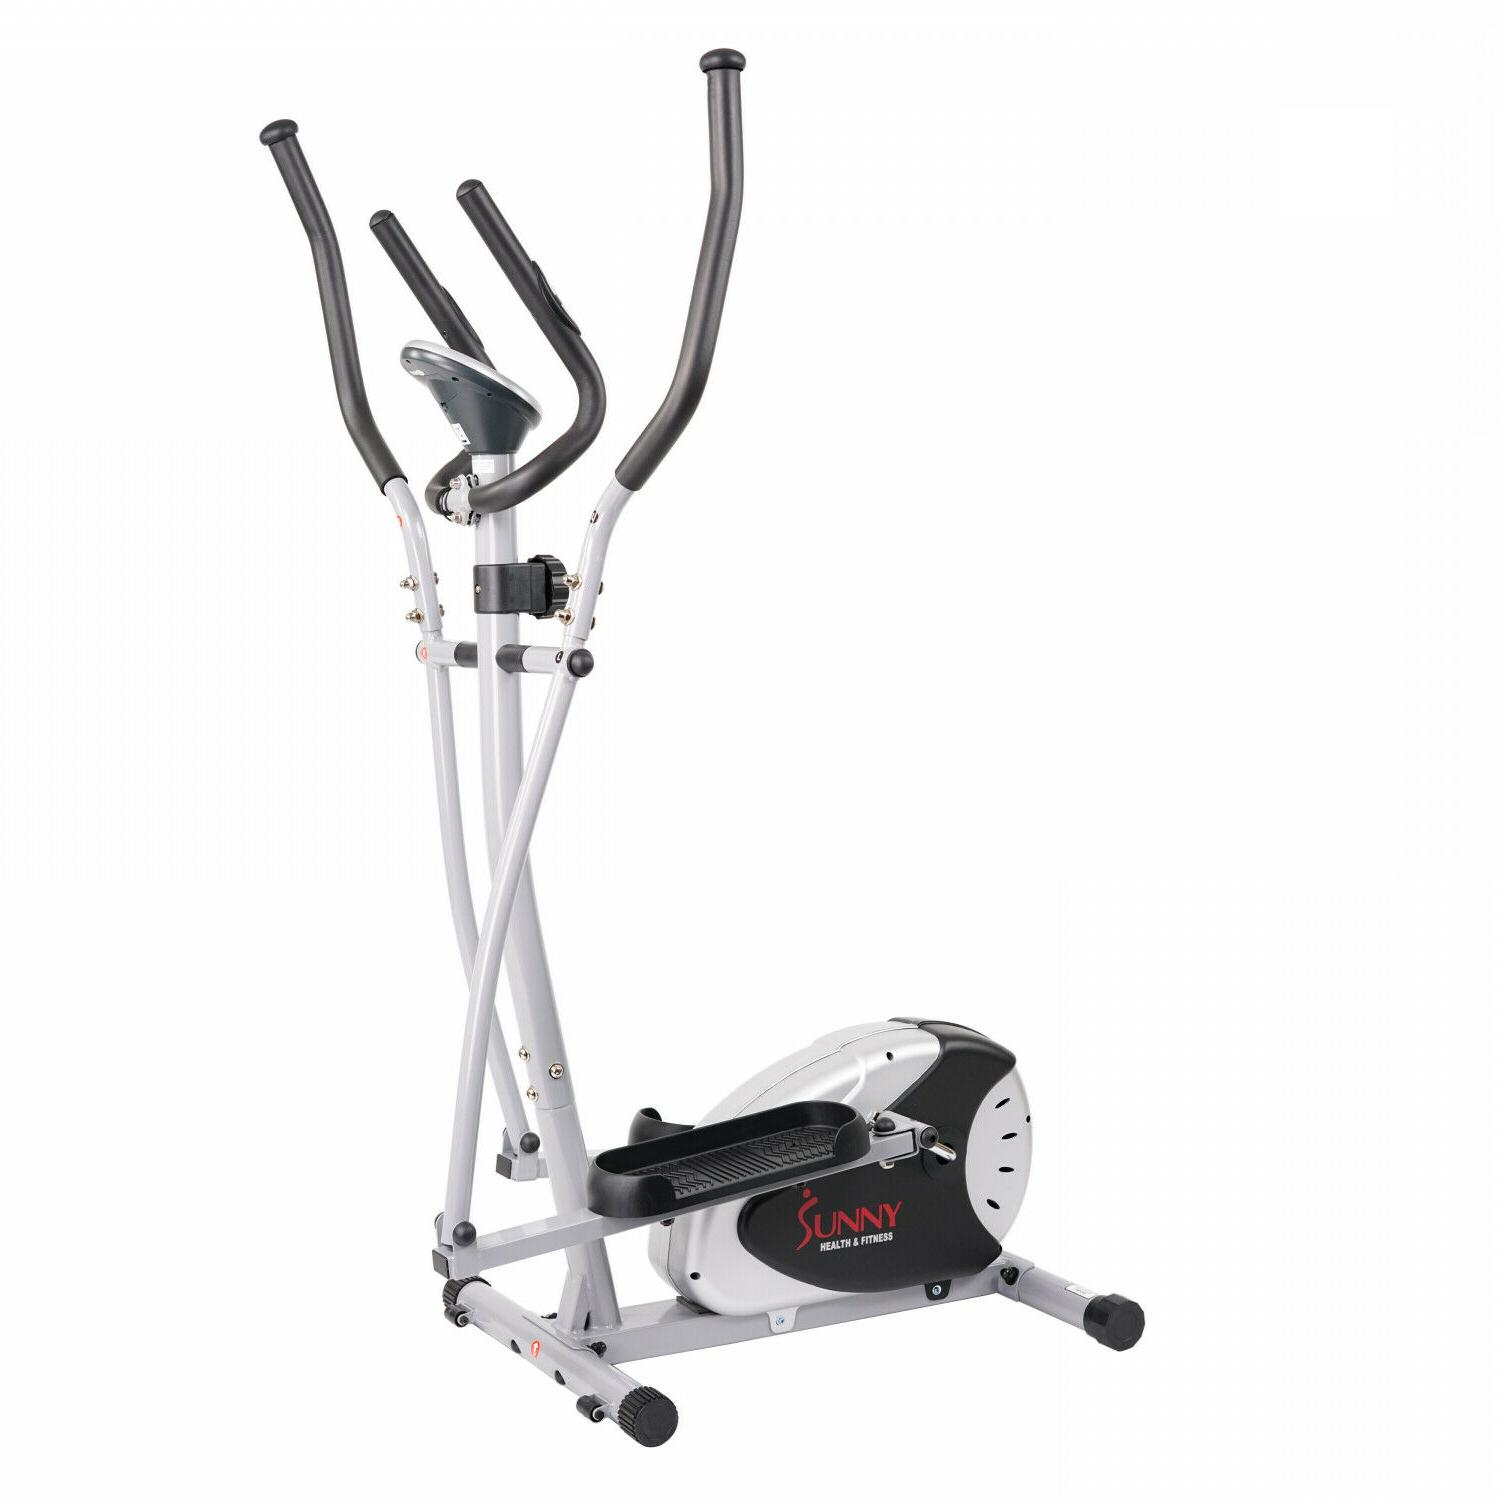 magnetic resistance elliptical bike trainer w large